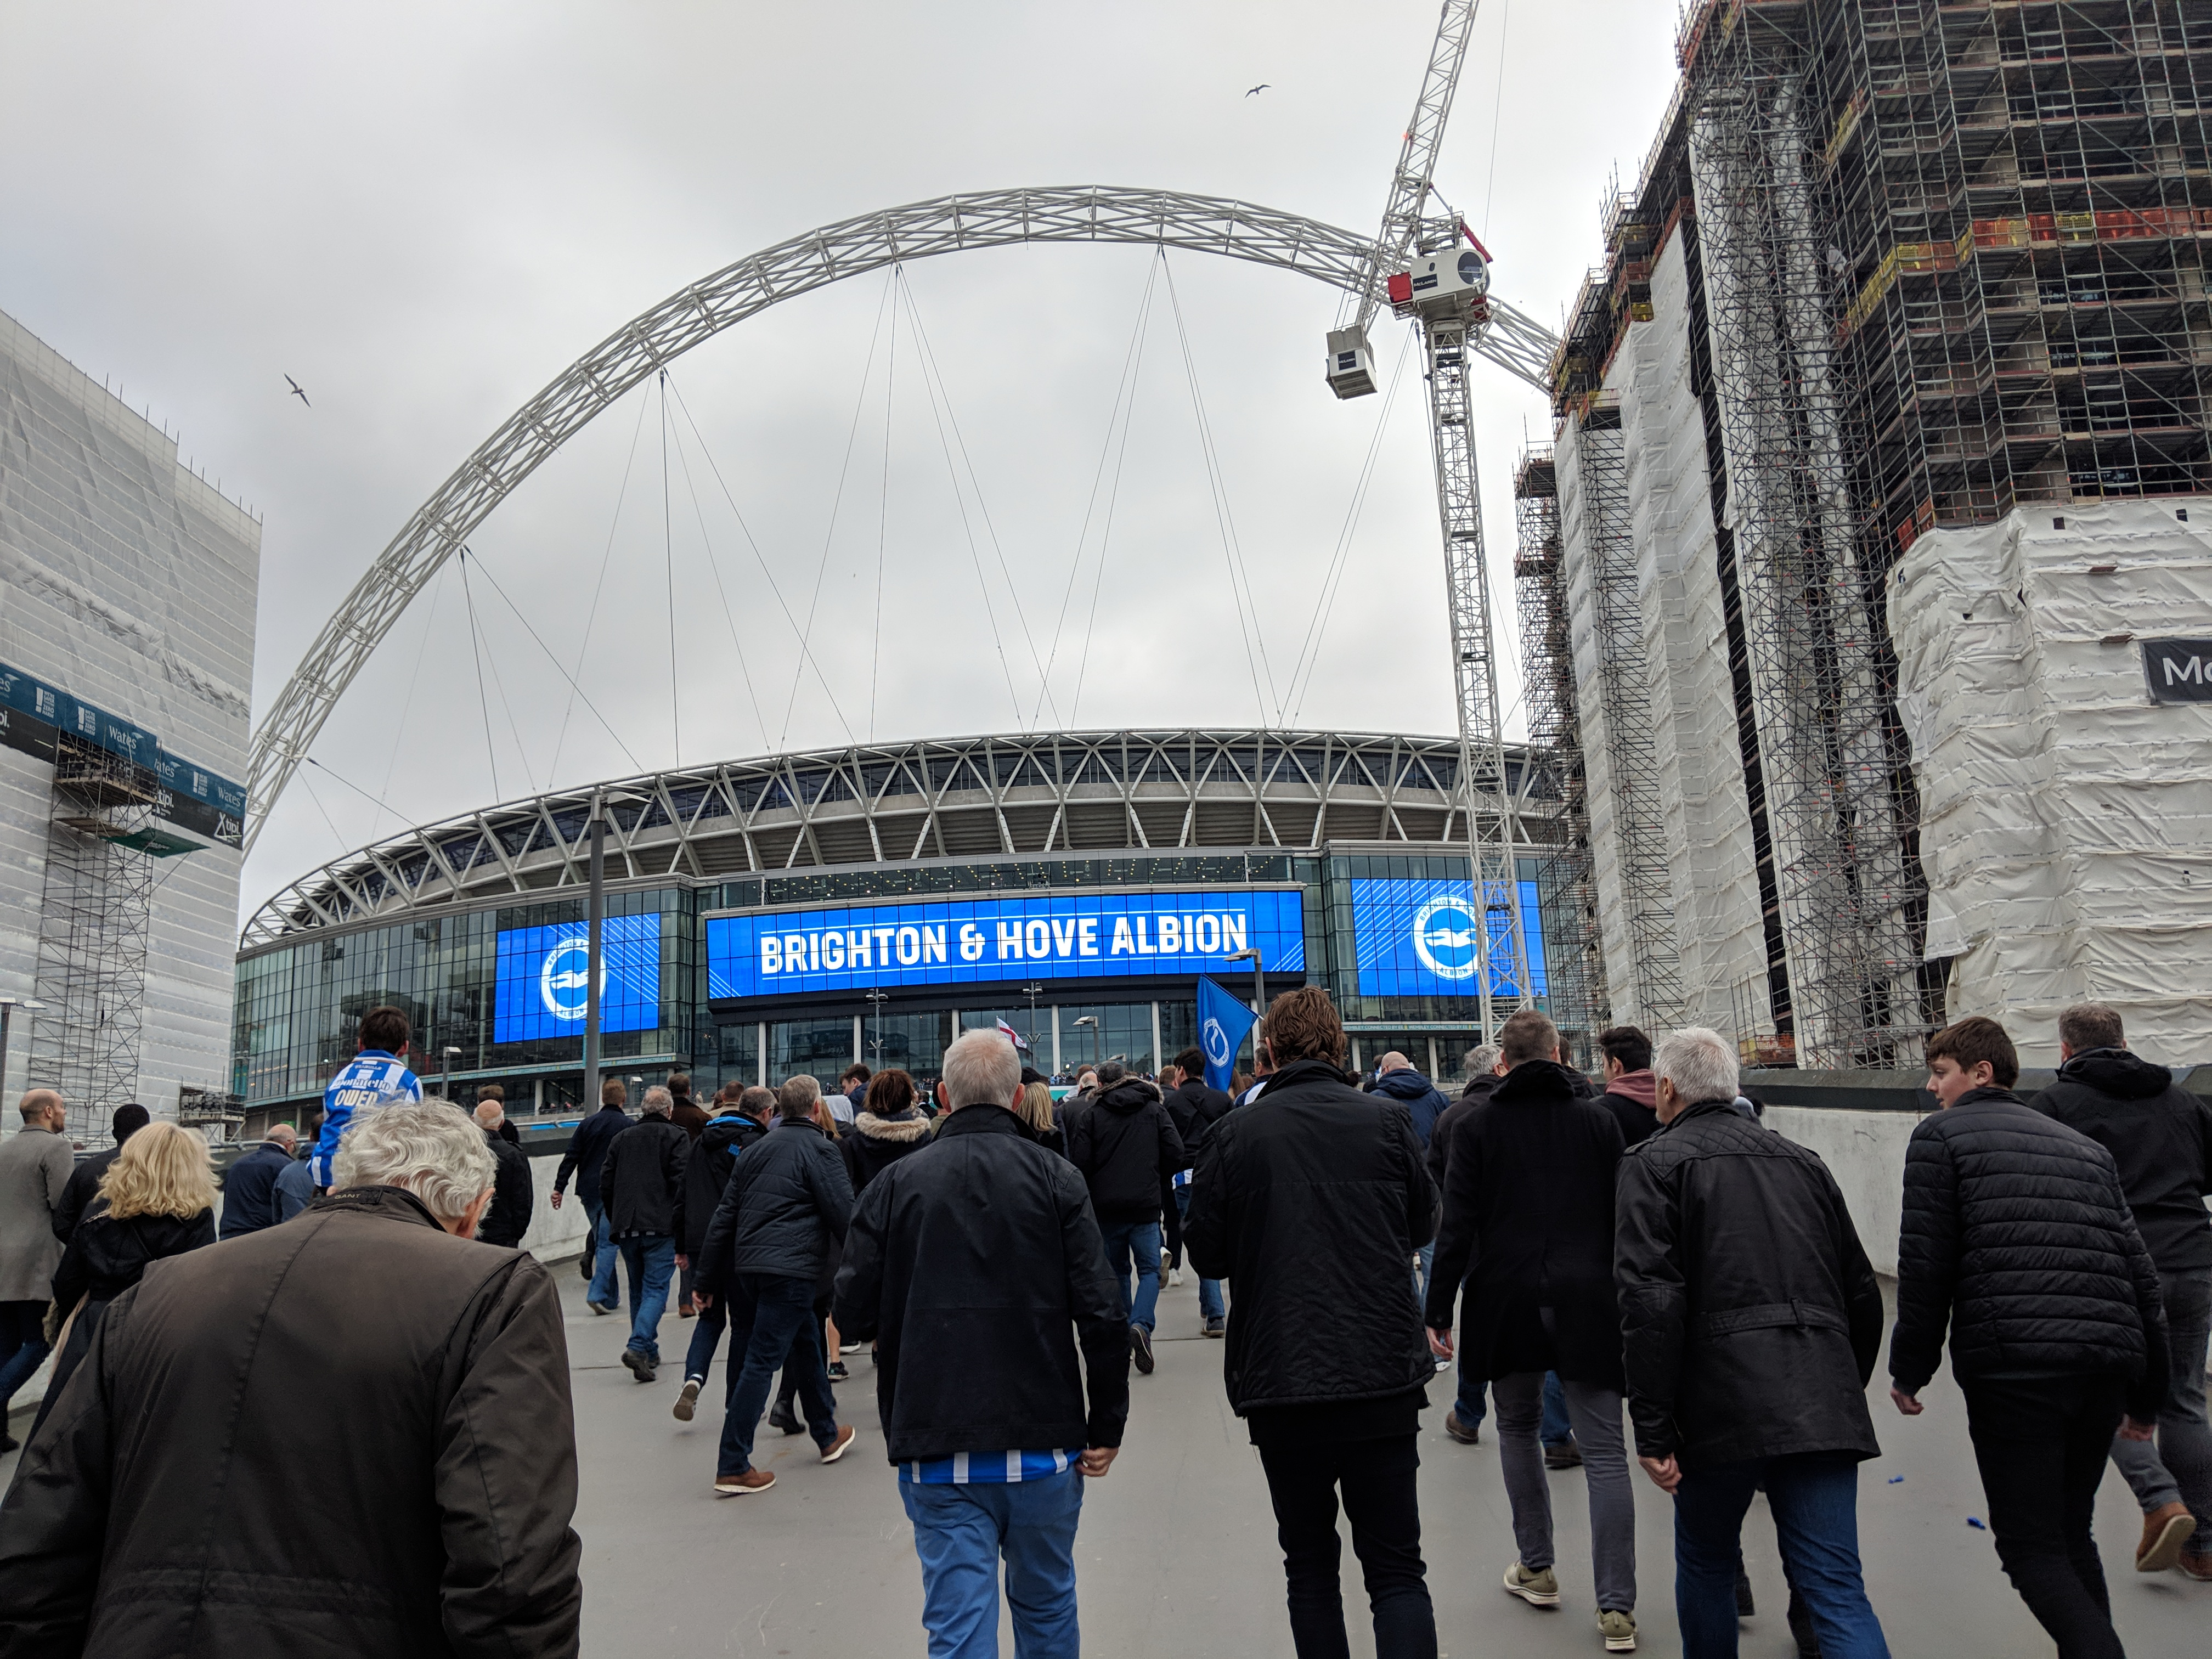 Group of people walking towards Wembley Stadium (London) with a Brighton and Hove Albion banner shown on the outside of the stadium.